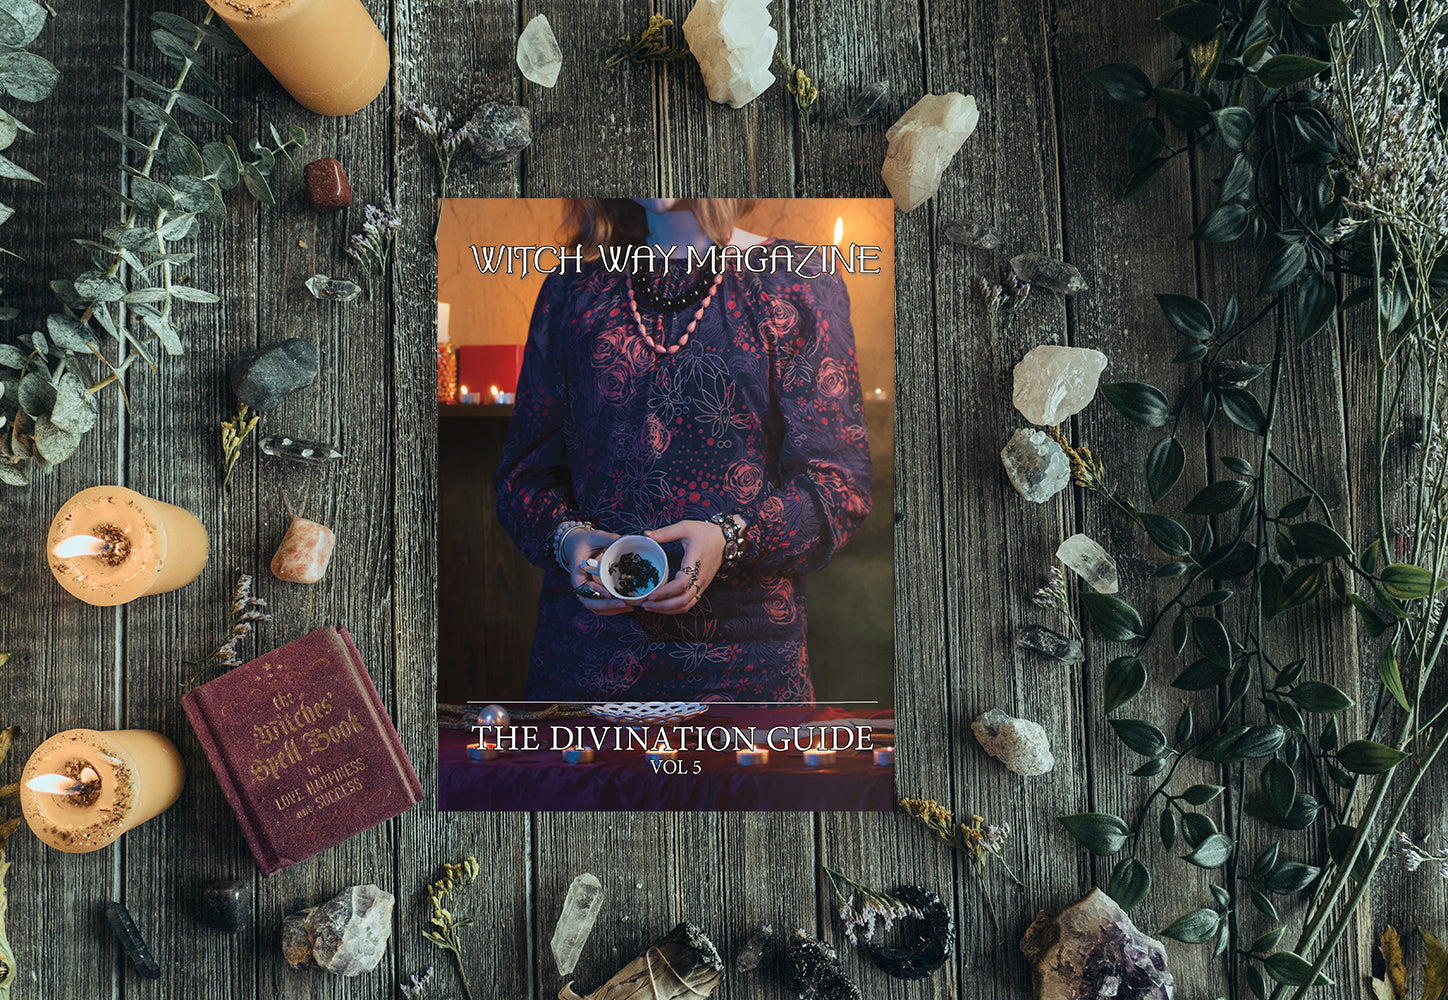 Witch Way Magazine 2020 Divination Guide -  Vol 5 - Printed